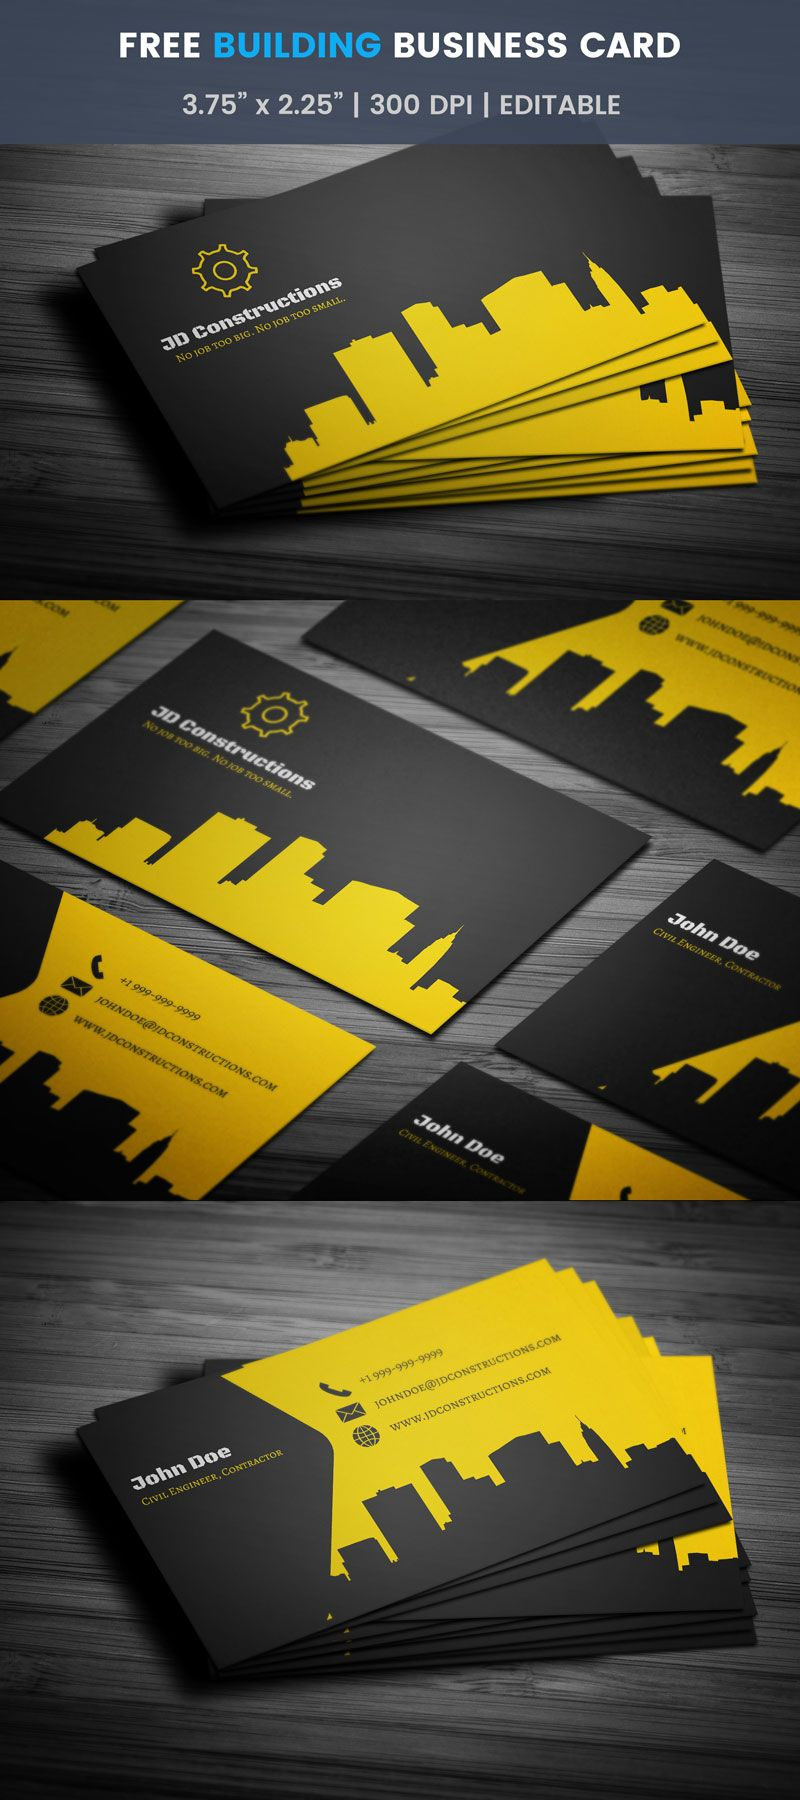 Building Construction Business Card - Full Preview | Free ...